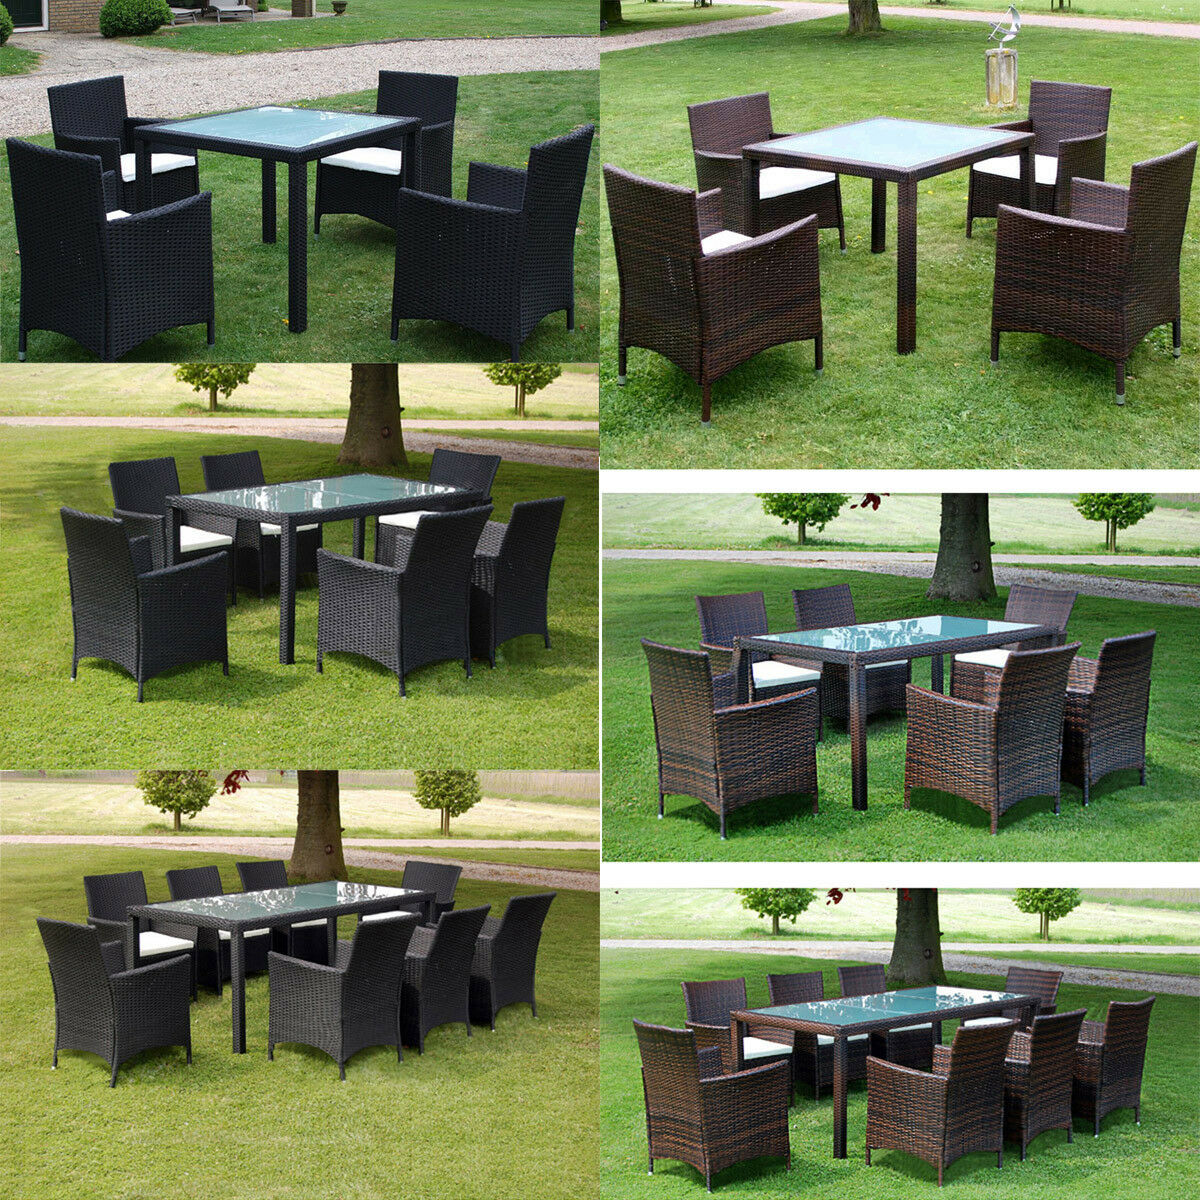 poly rattan gartenm bel set sitzgruppe essgruppe gartengarnitur mehrere auswahl eur 239 99. Black Bedroom Furniture Sets. Home Design Ideas